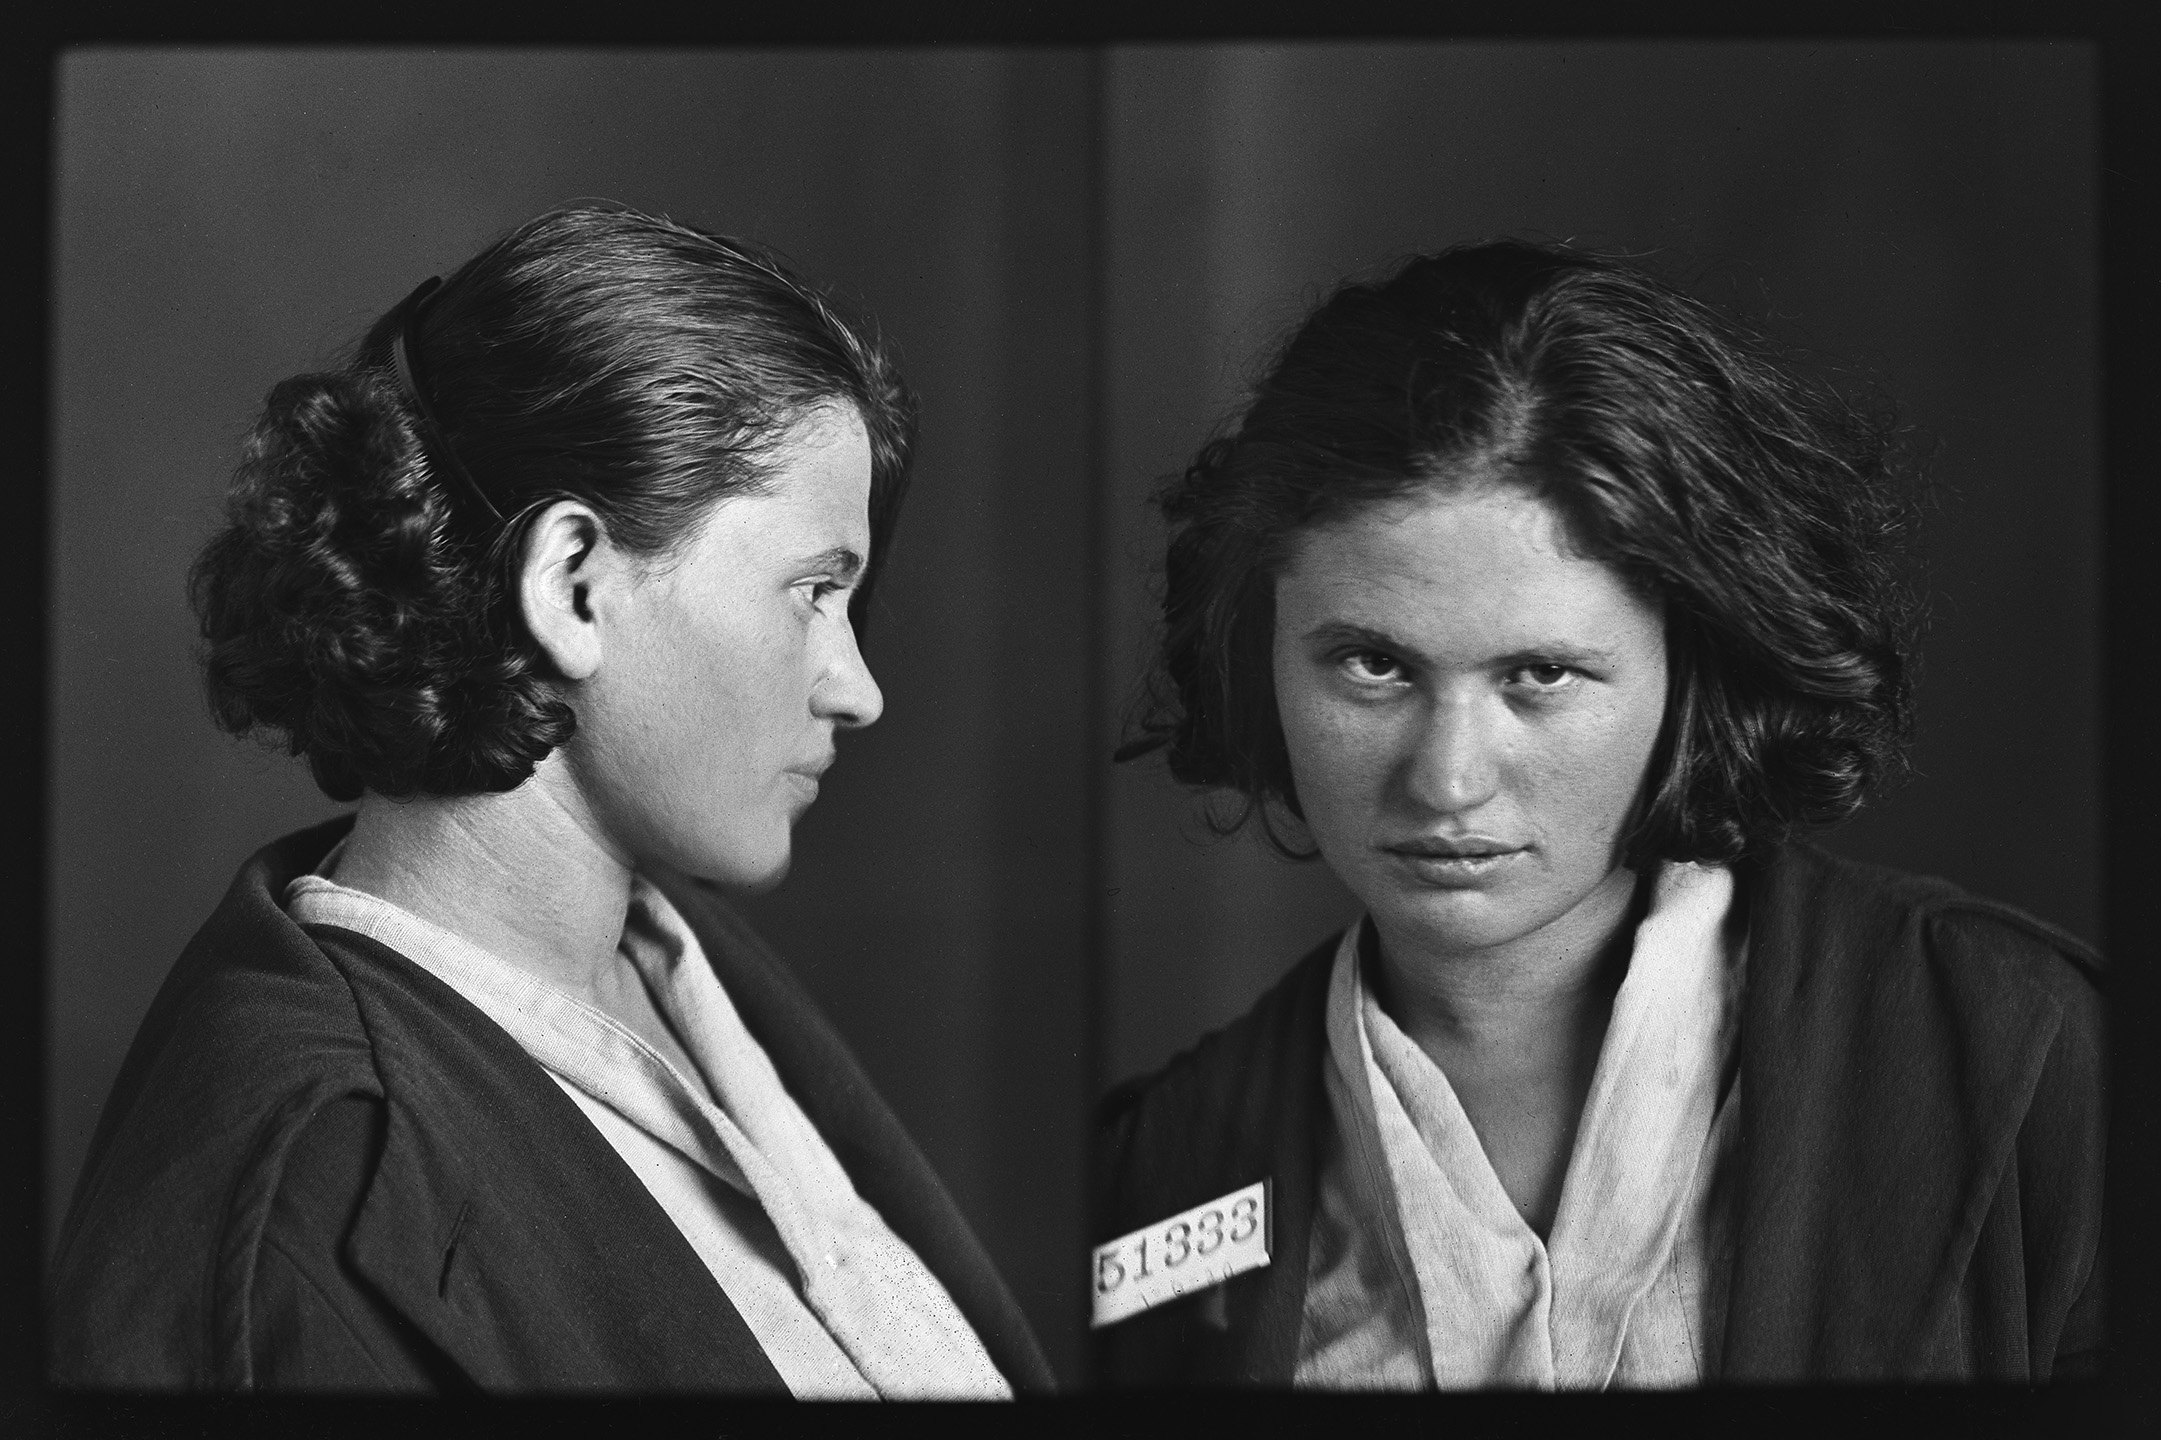 Isabella Ziegler, Grand Larceny  Photographed upon release from Bedford Hills Correctional Facility for Women, July 6, 1920